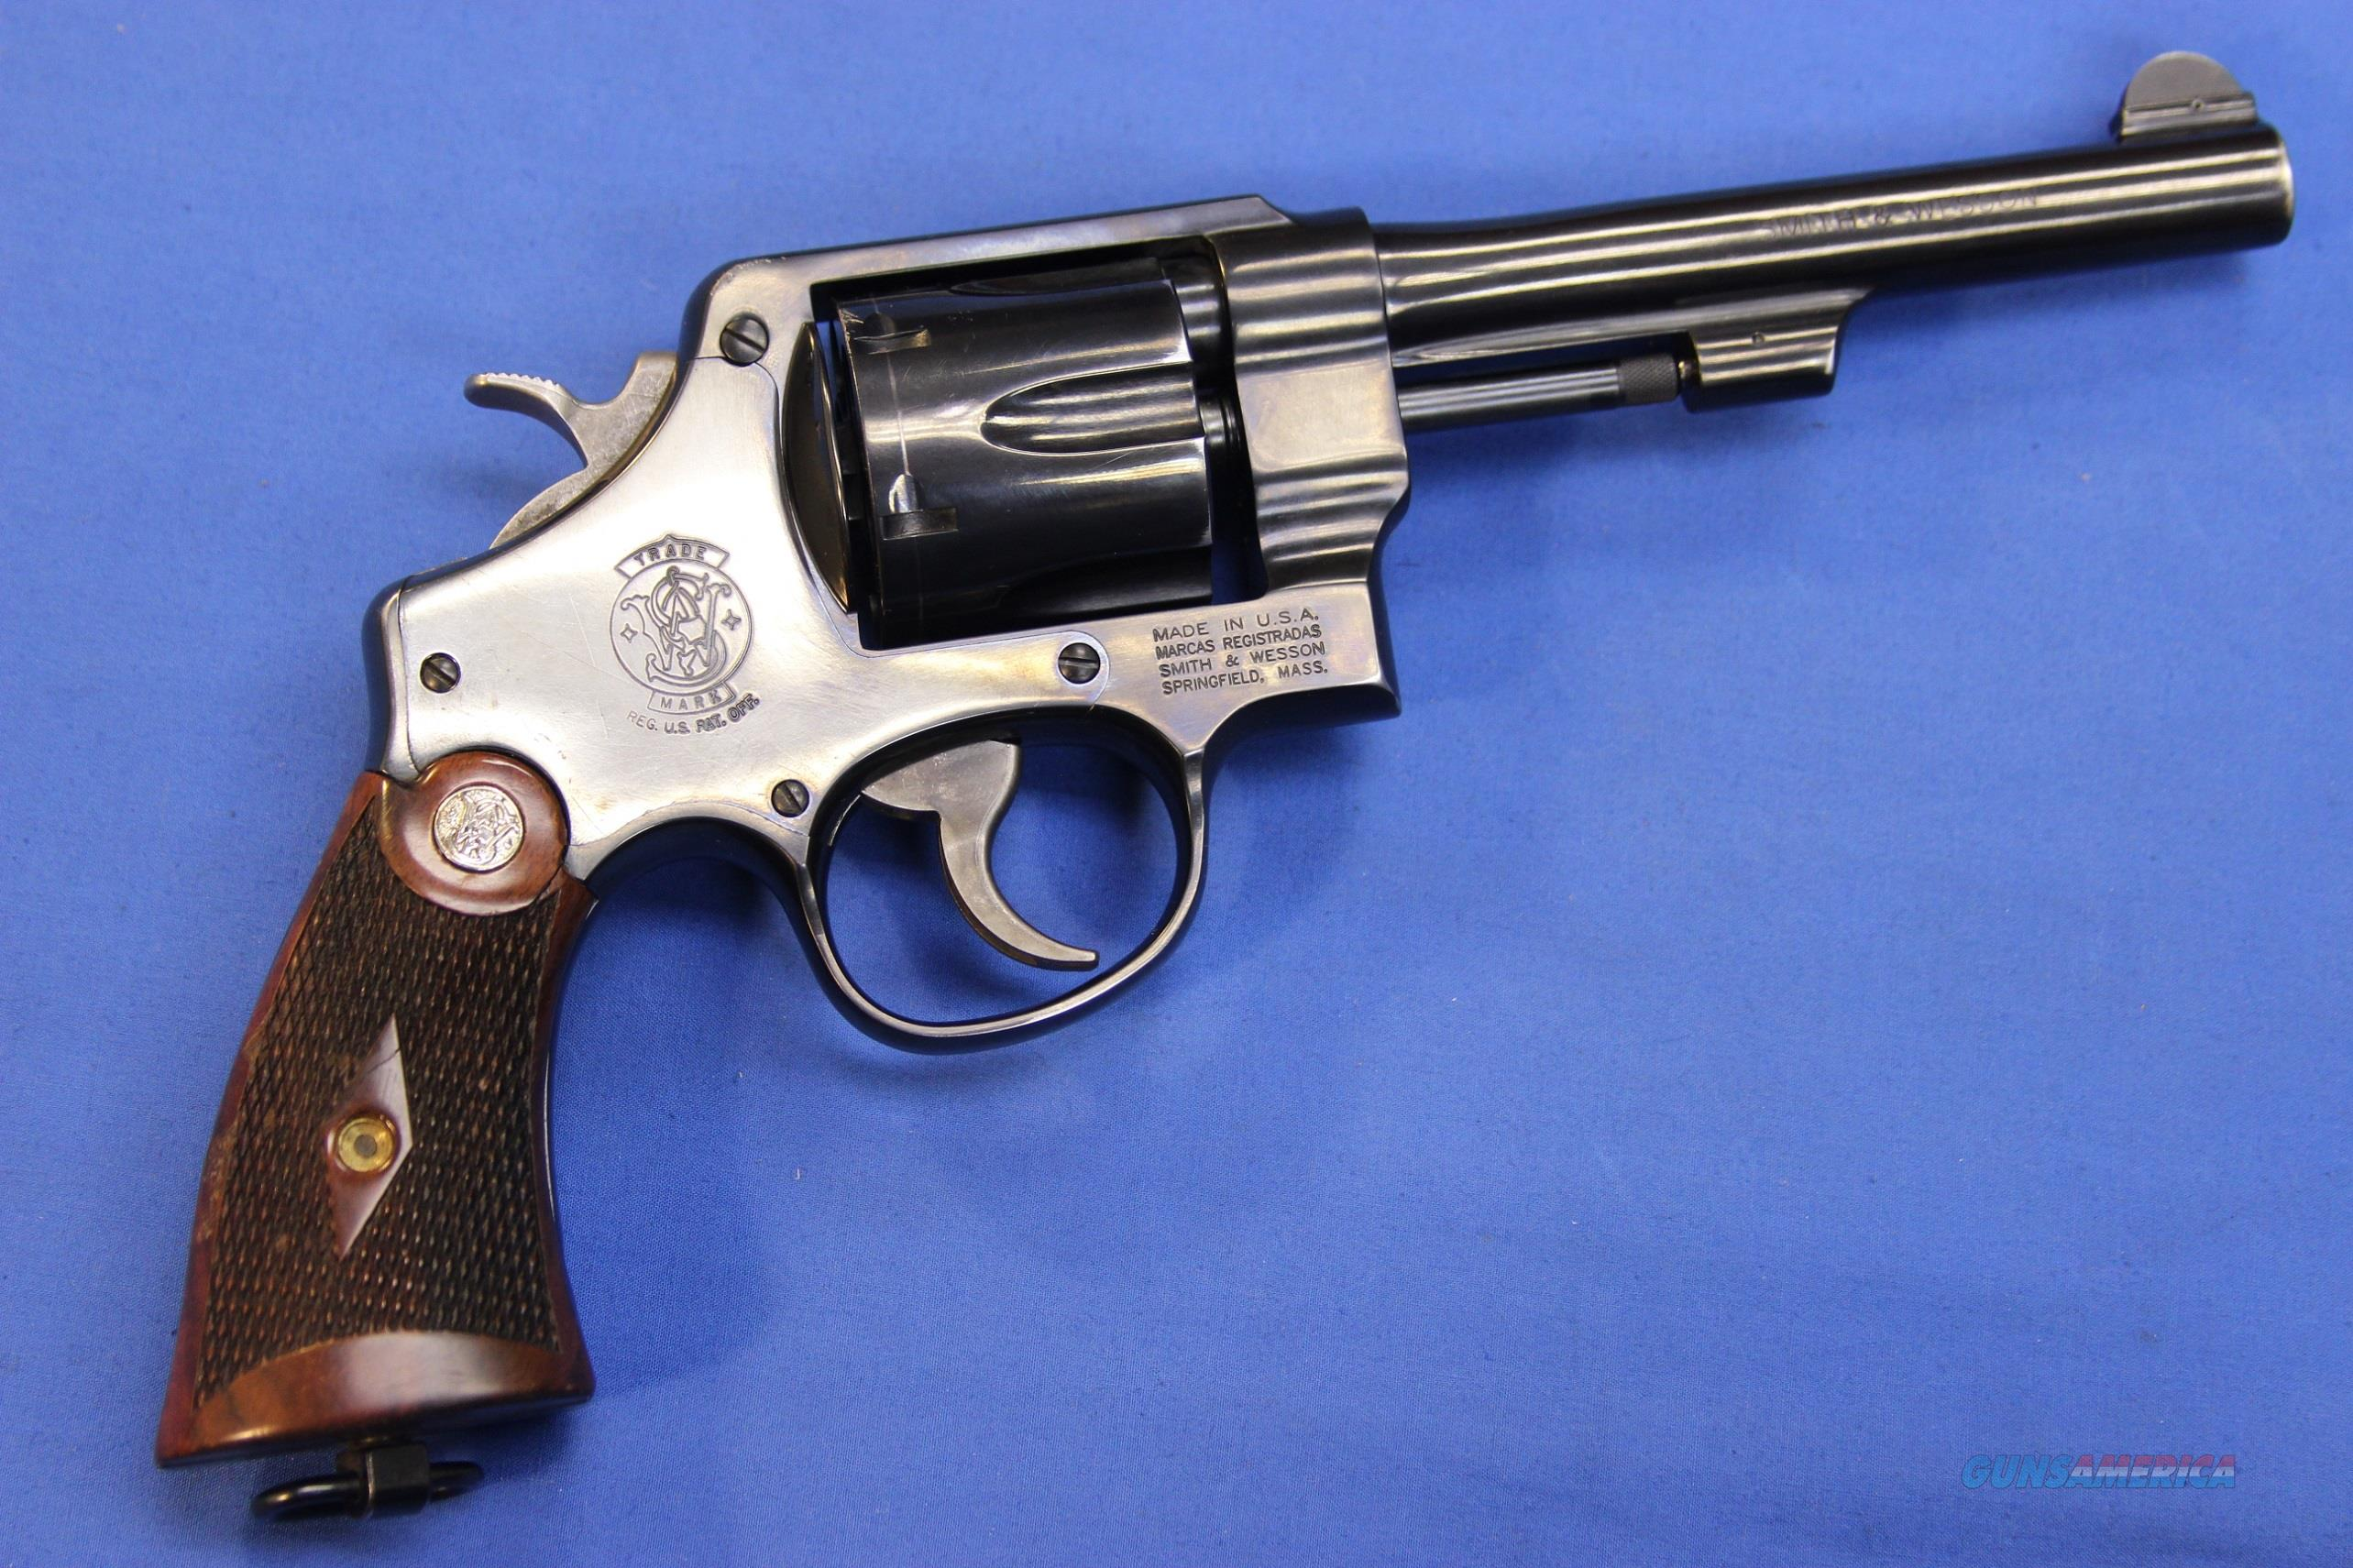 SMITH & WESSON 22-4 .45 ACP w/ BOX & HOLSTER  Guns > Pistols > Smith & Wesson Revolvers > Full Frame Revolver